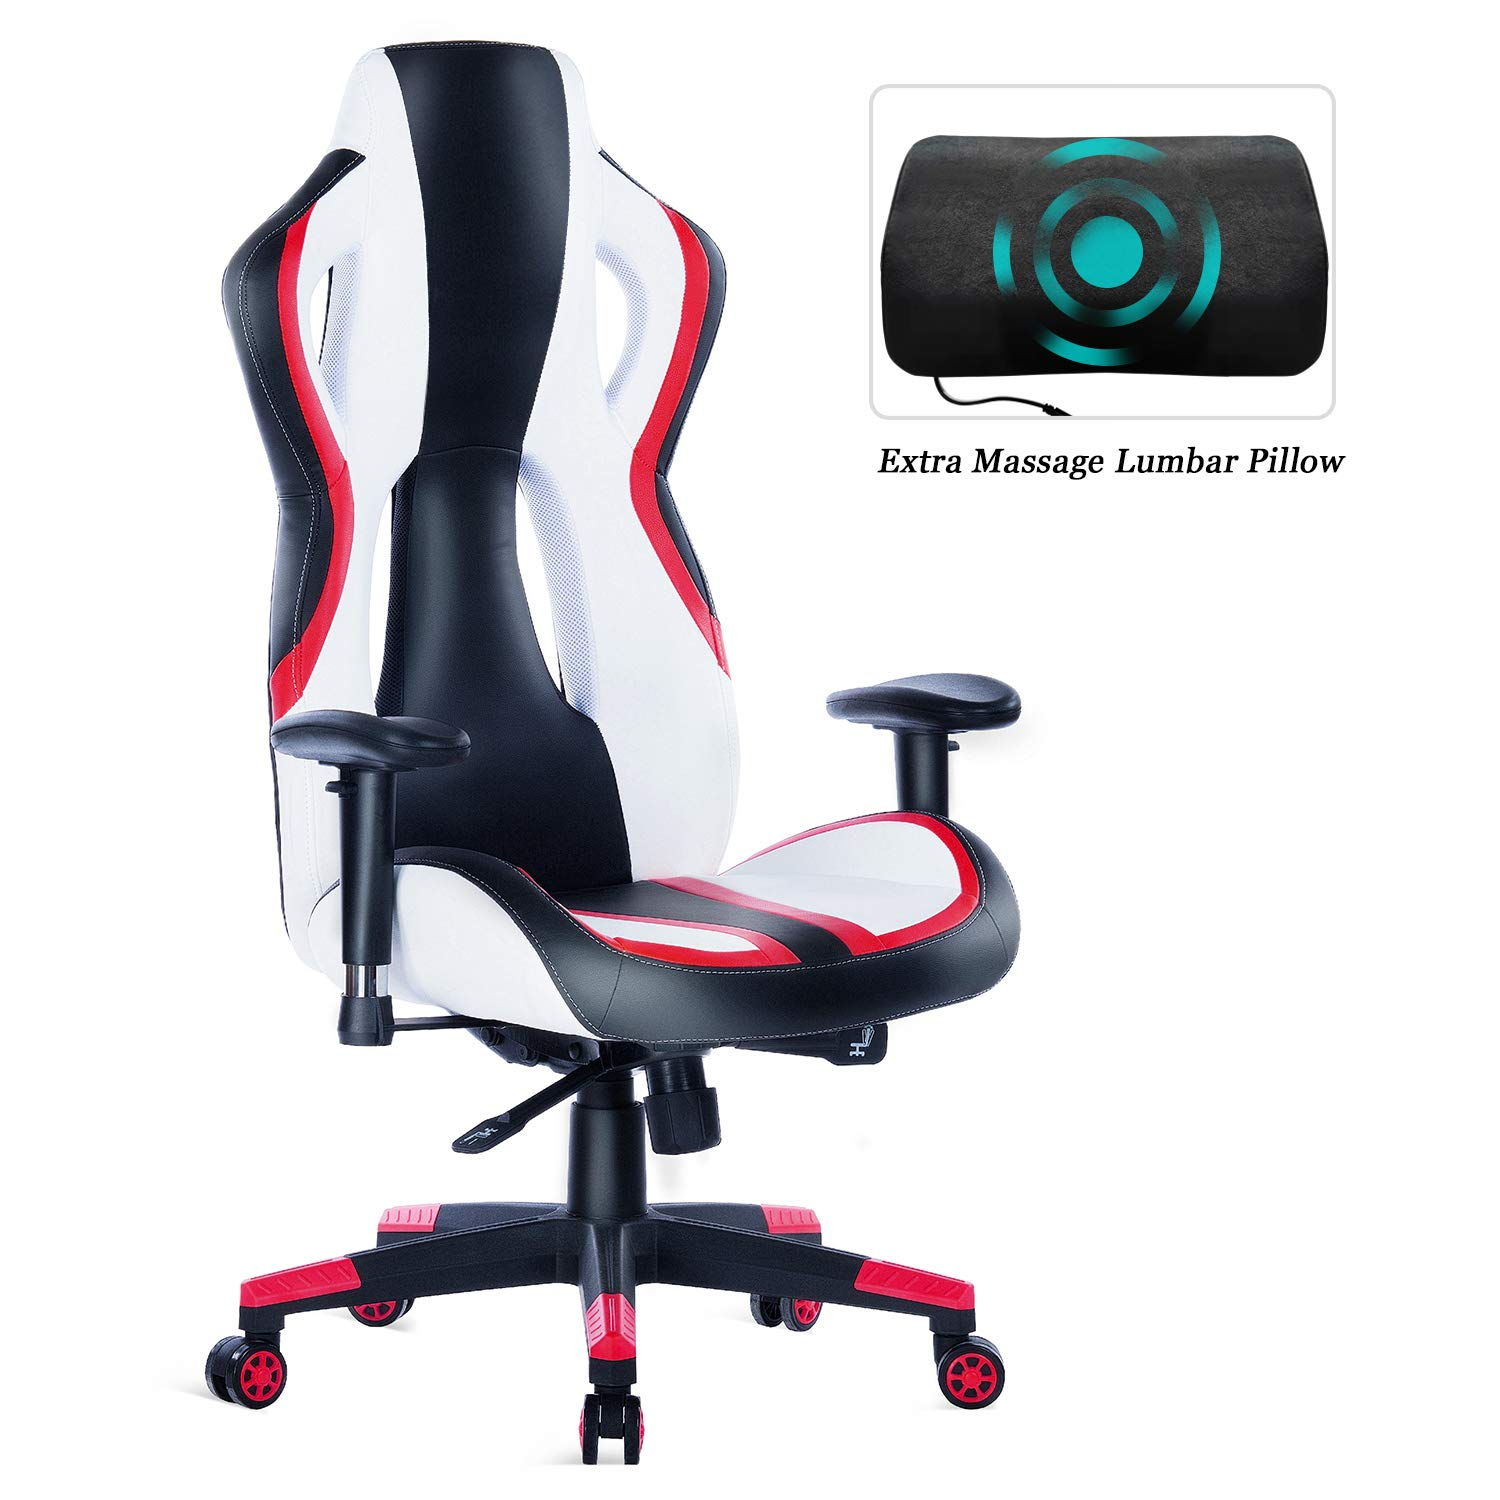 HEALGEN Gaming Chair Racing Style High-Back PU Leather Office Chair PC Desk Chair Executive and Ergonomic Swivel Chair (907 Red) by HEALGEN